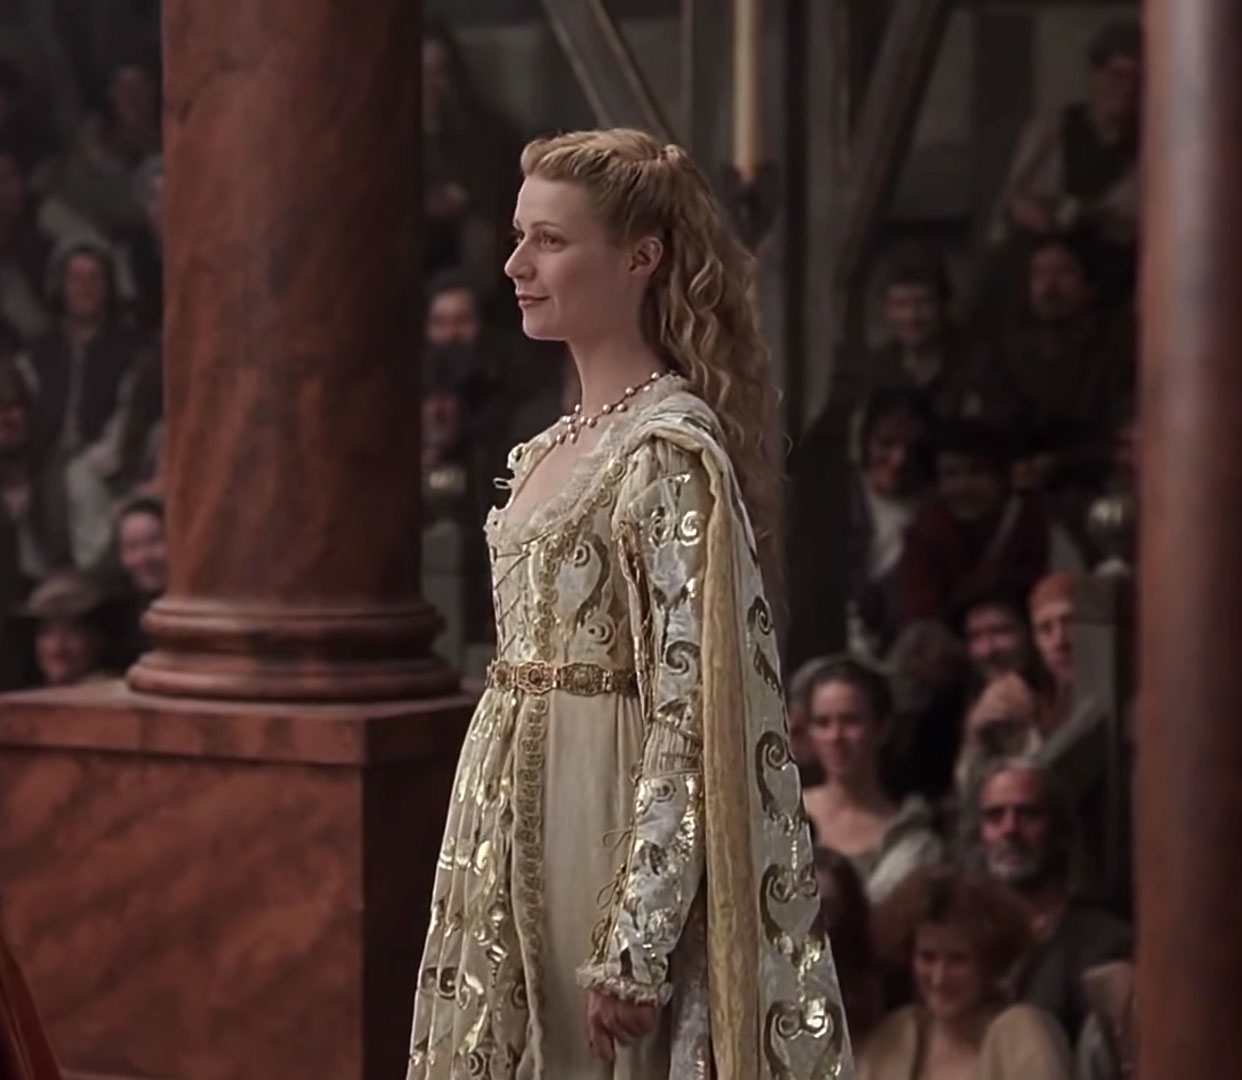 Gwyneth Paltrow Initially Turned Down 'Shakespeare in Love' After 'Terrible Breakup' With Brad Pitt - Gwyneth Paltrow in 'Shakespeare in Love'